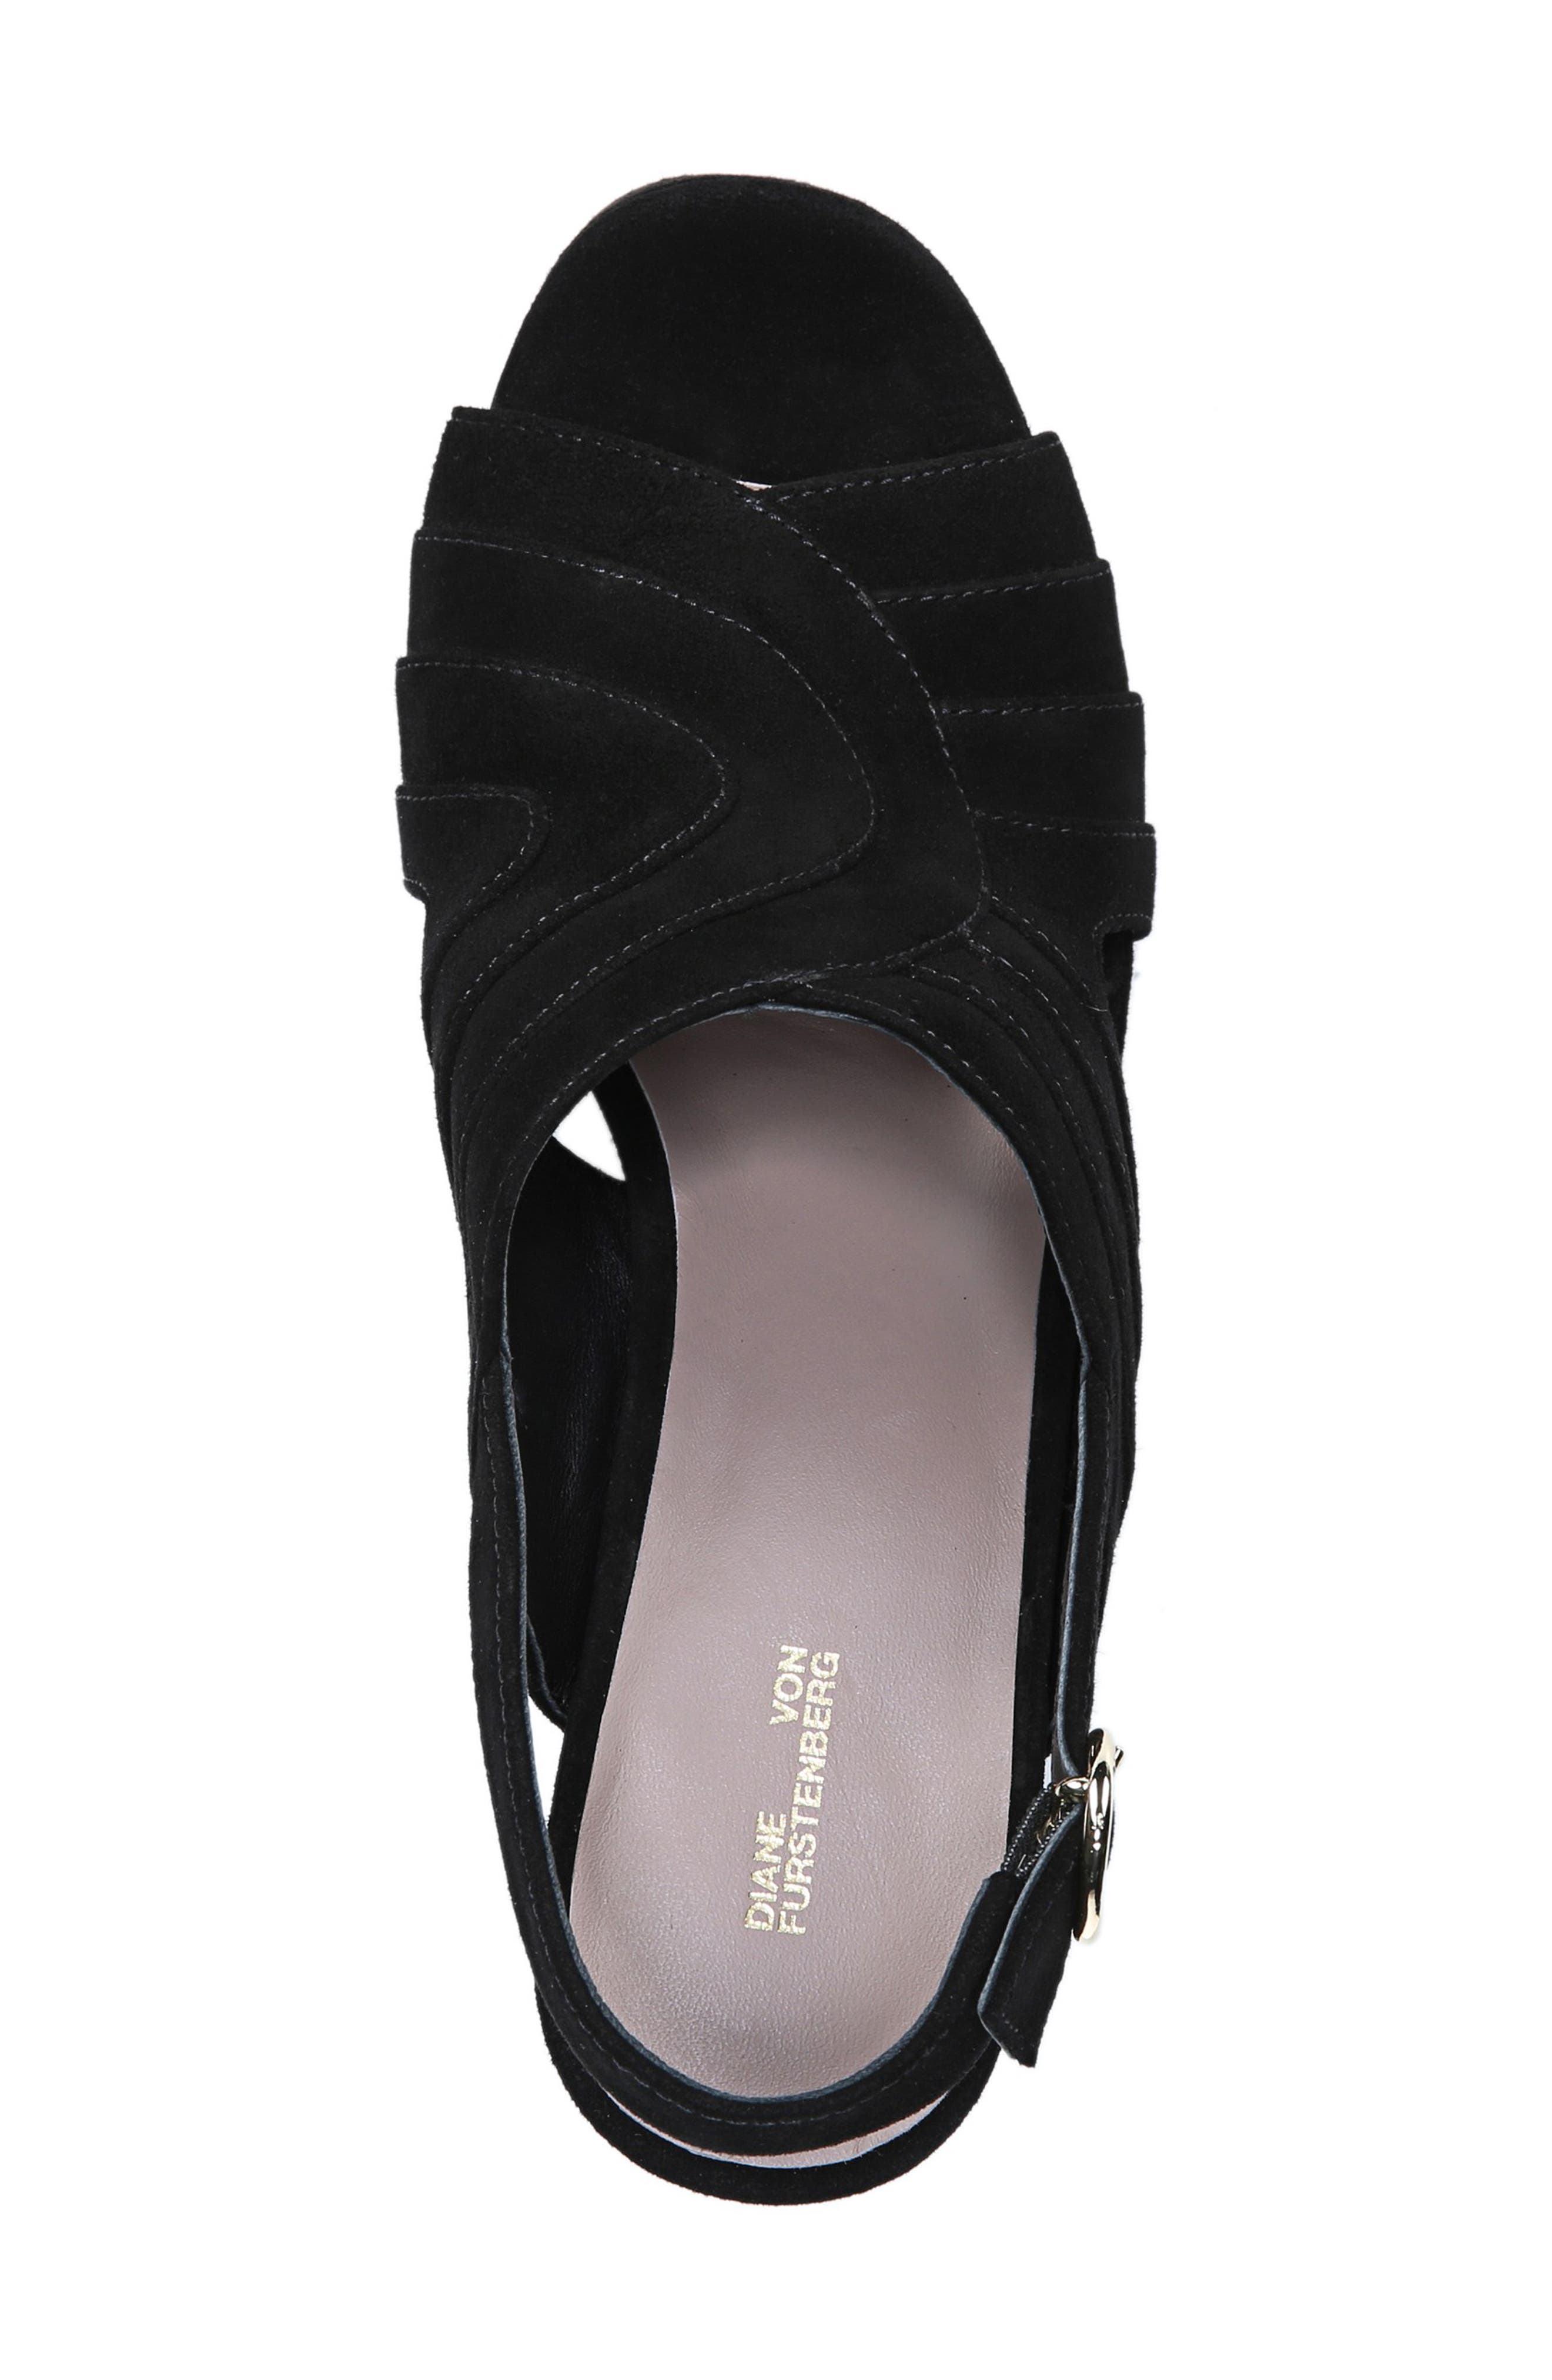 Tabby Platform Sandal,                             Alternate thumbnail 5, color,                             BLACK